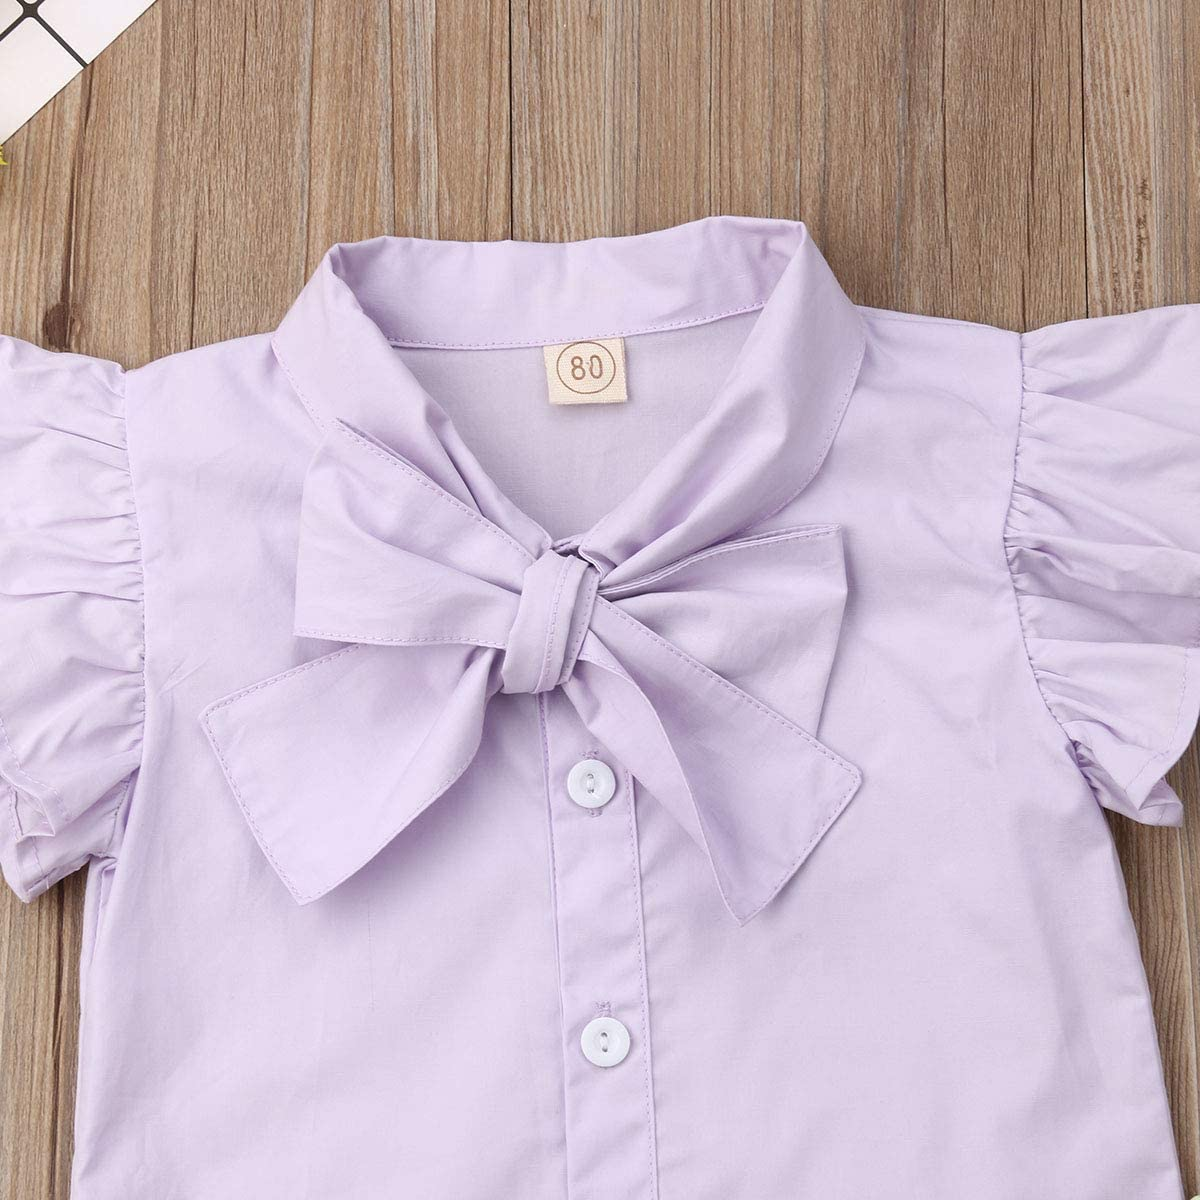 Toddler Baby Girls Ruffle Bowknot Short Sleeve Top Shirt+Floral Short Jumpsuit Suspenders Overall Outfit Clothes